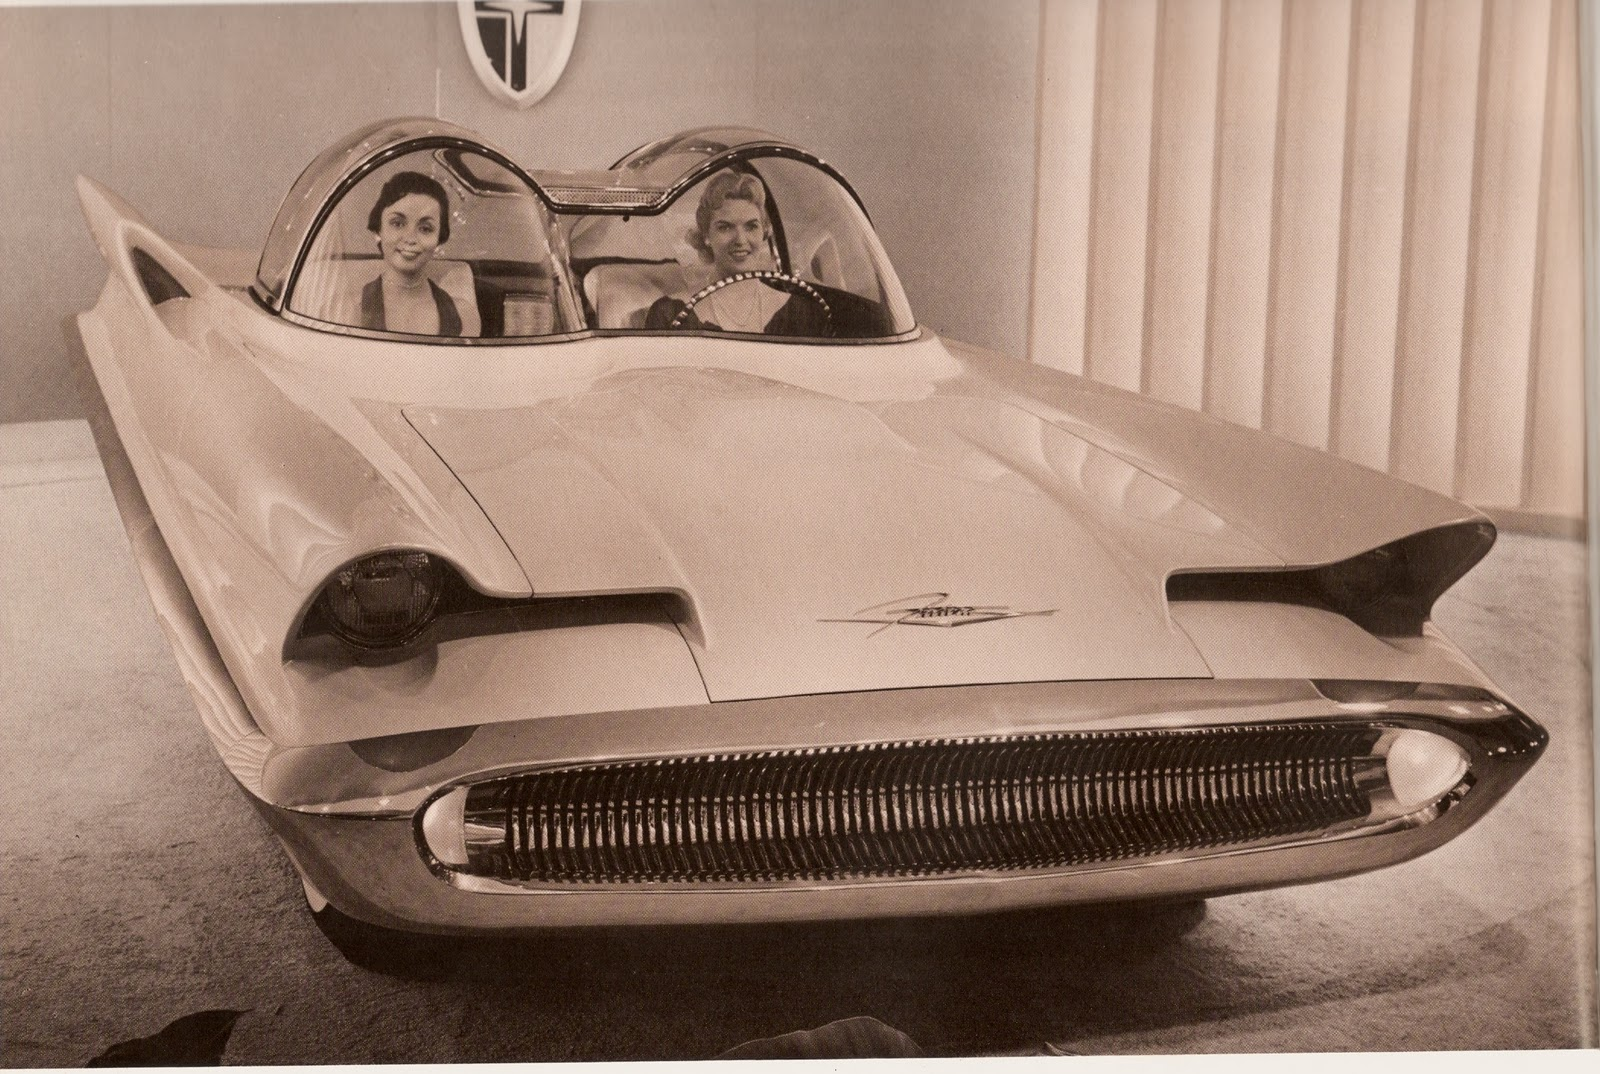 From The 1960s Tv Series You Re Not Mistaken But It S Batmobile This 1950s Sci Fi Looking Beast Is A Futuristic Concept Car Lincoln